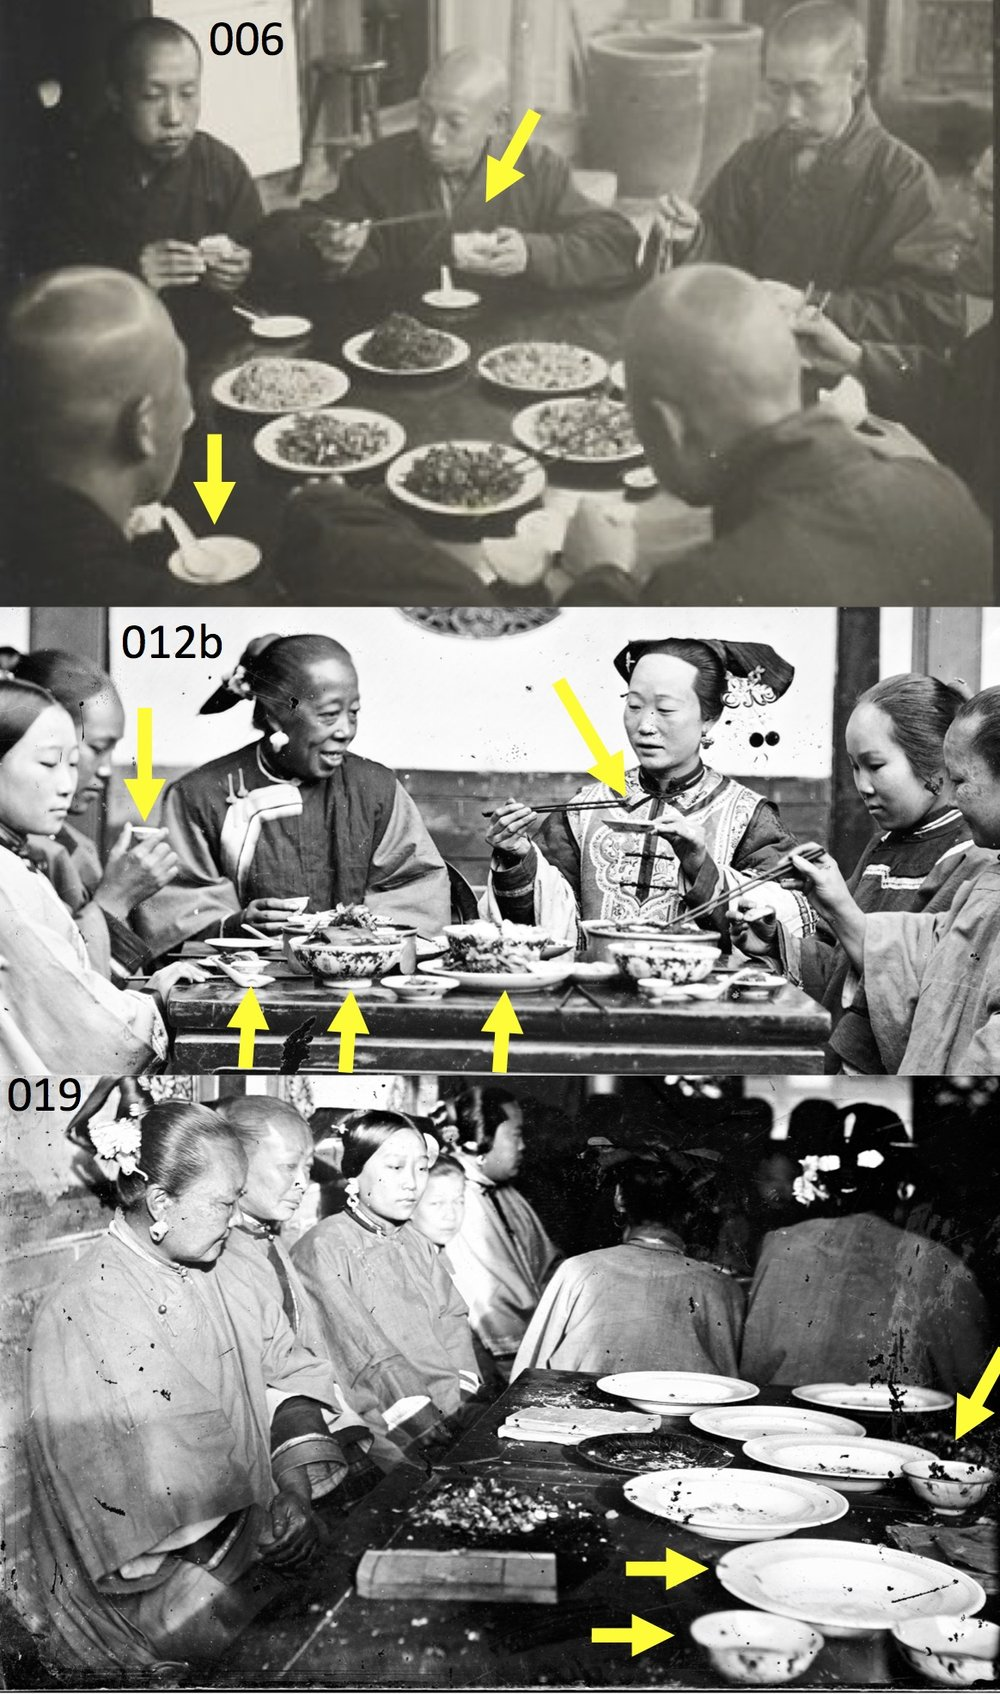 Chinese food eating, contexts 3 and 4—several dishes of food on a table, with smaller bowls and small plates for eating. Image 006: Monks at a table eating on Miaofeng Mountain, North China, ca 1933–1946 (photo by Hedda Morrison ca 1933–1946a). Image 012b: Manchu ladies at meal table, Peking, ca 1870 (John Thomson ca 1870). Image 019: Manchu ladies mission party, Peking, 1869 (John Thomson ca 1869). [Web sources for images are listed in article]